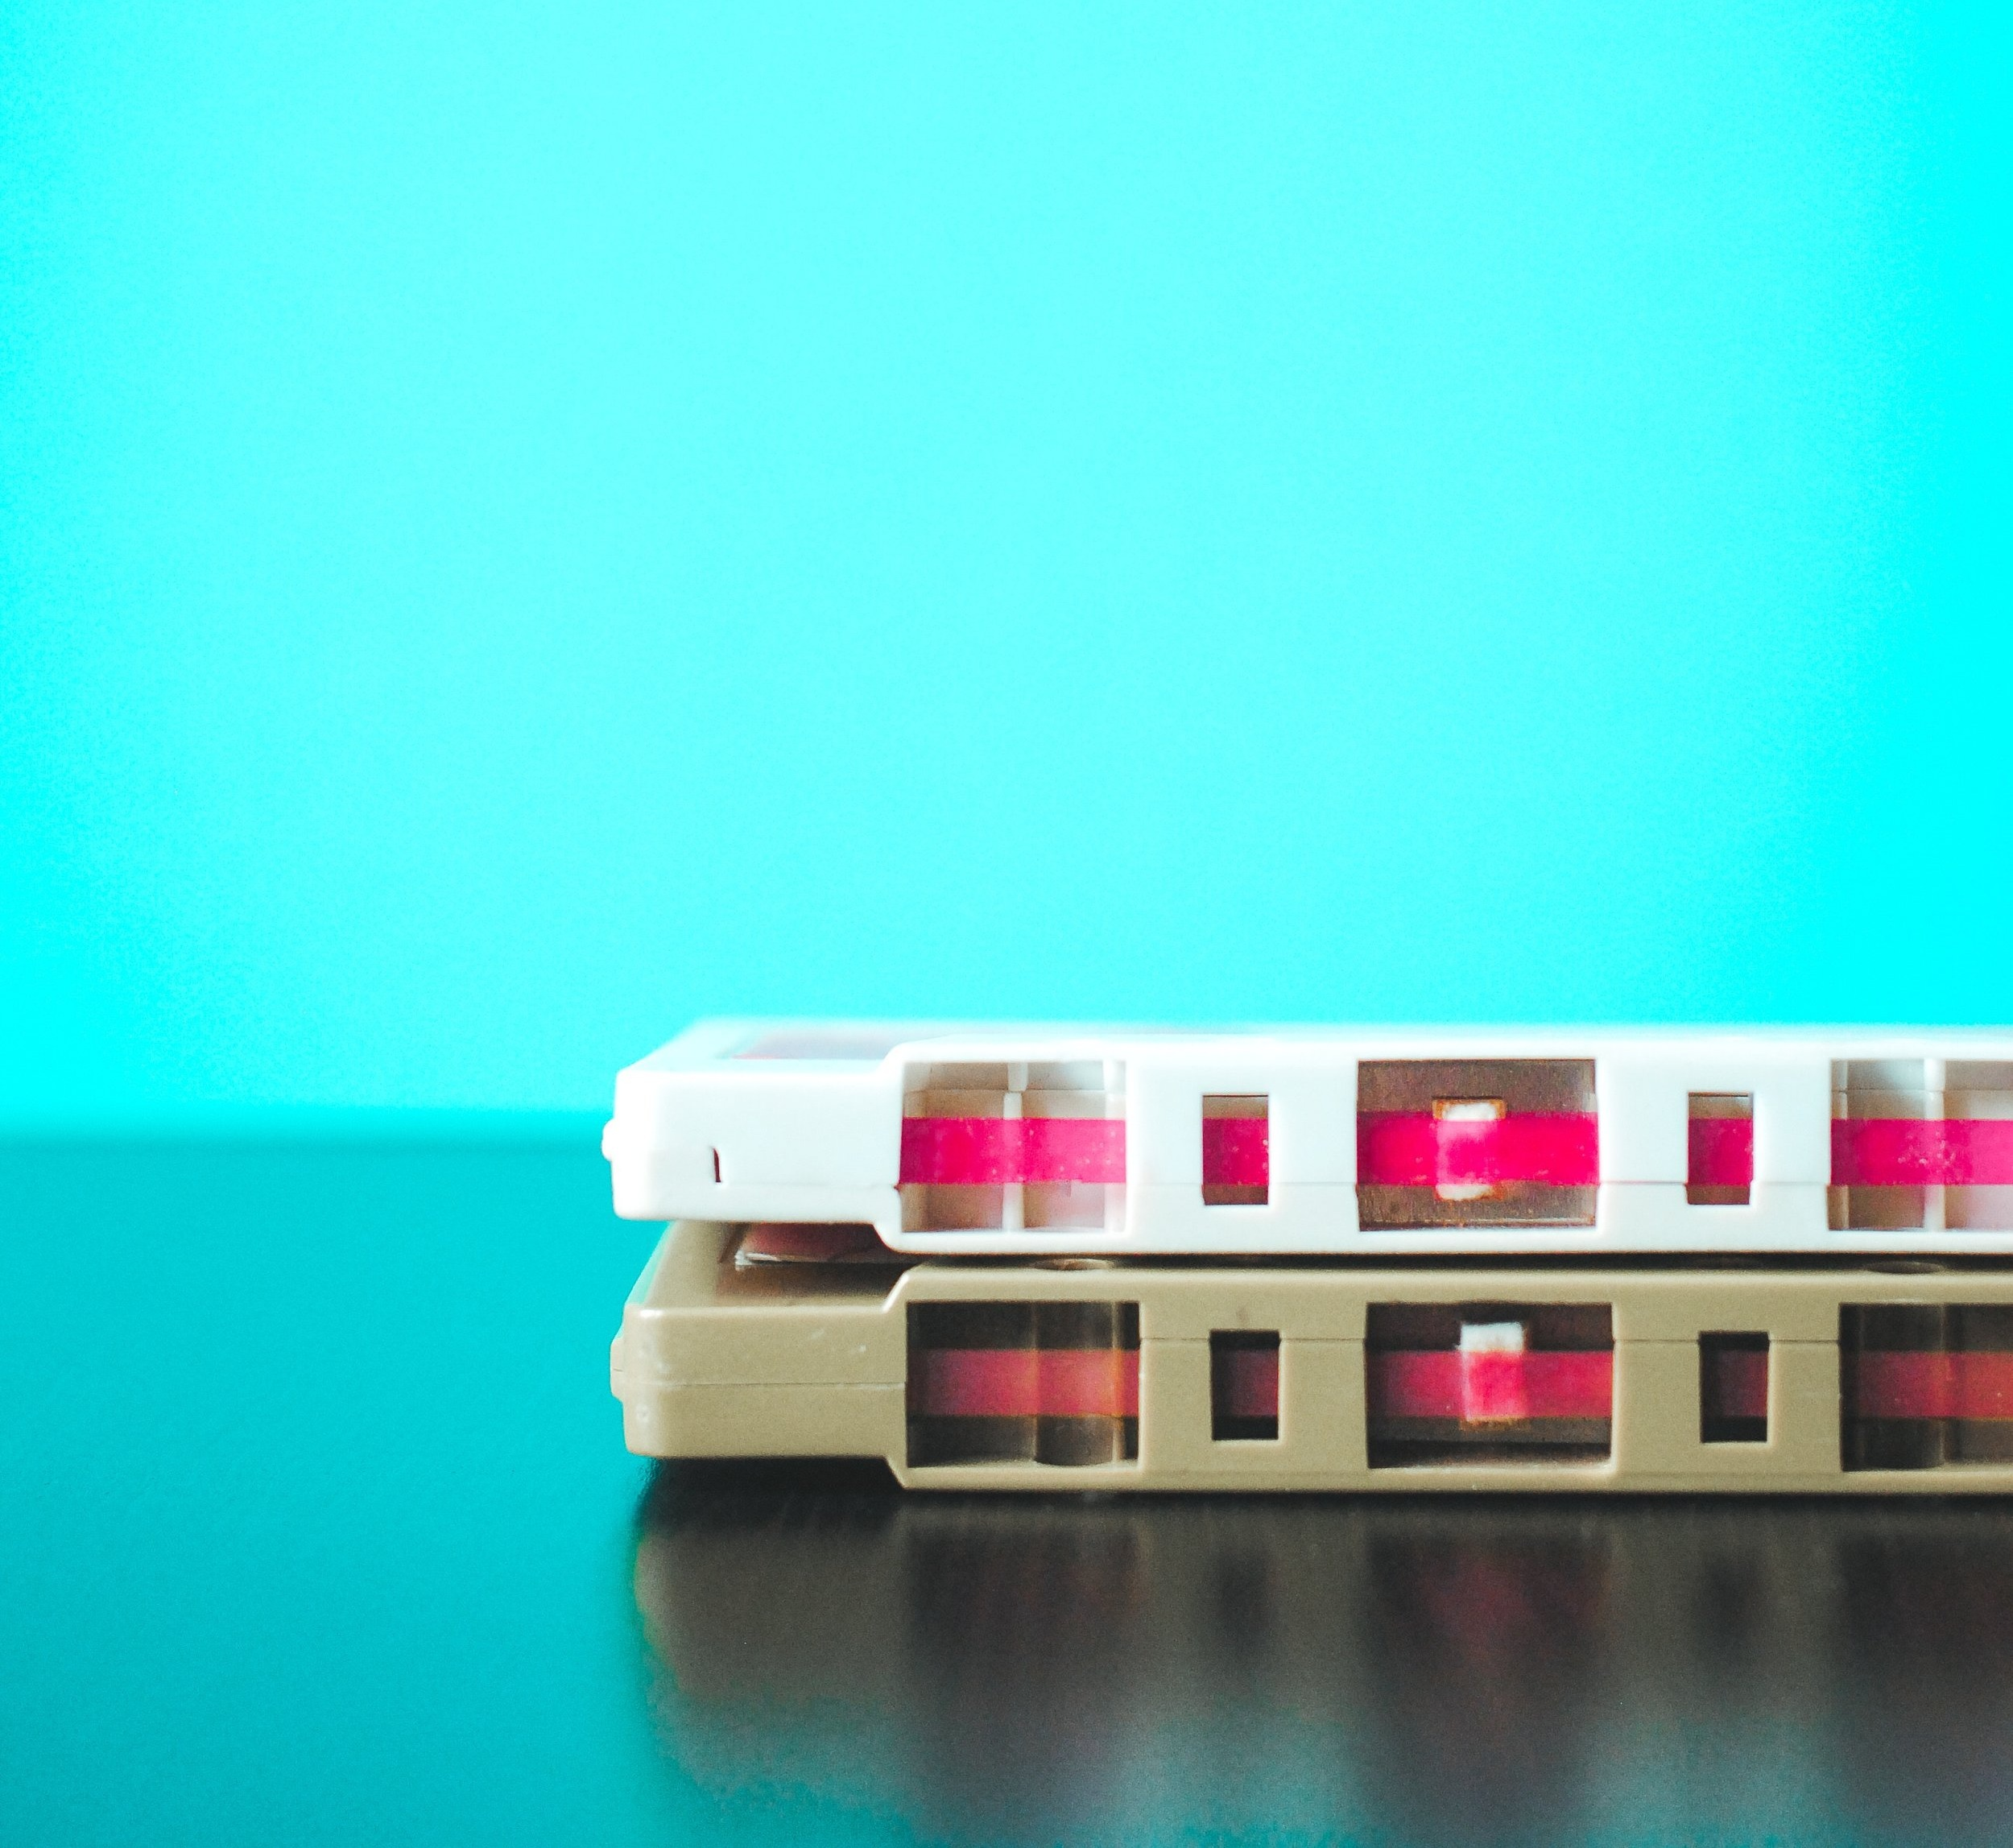 In many ways, traditional marketing efforts are becoming outdated technology like the cassette tape.